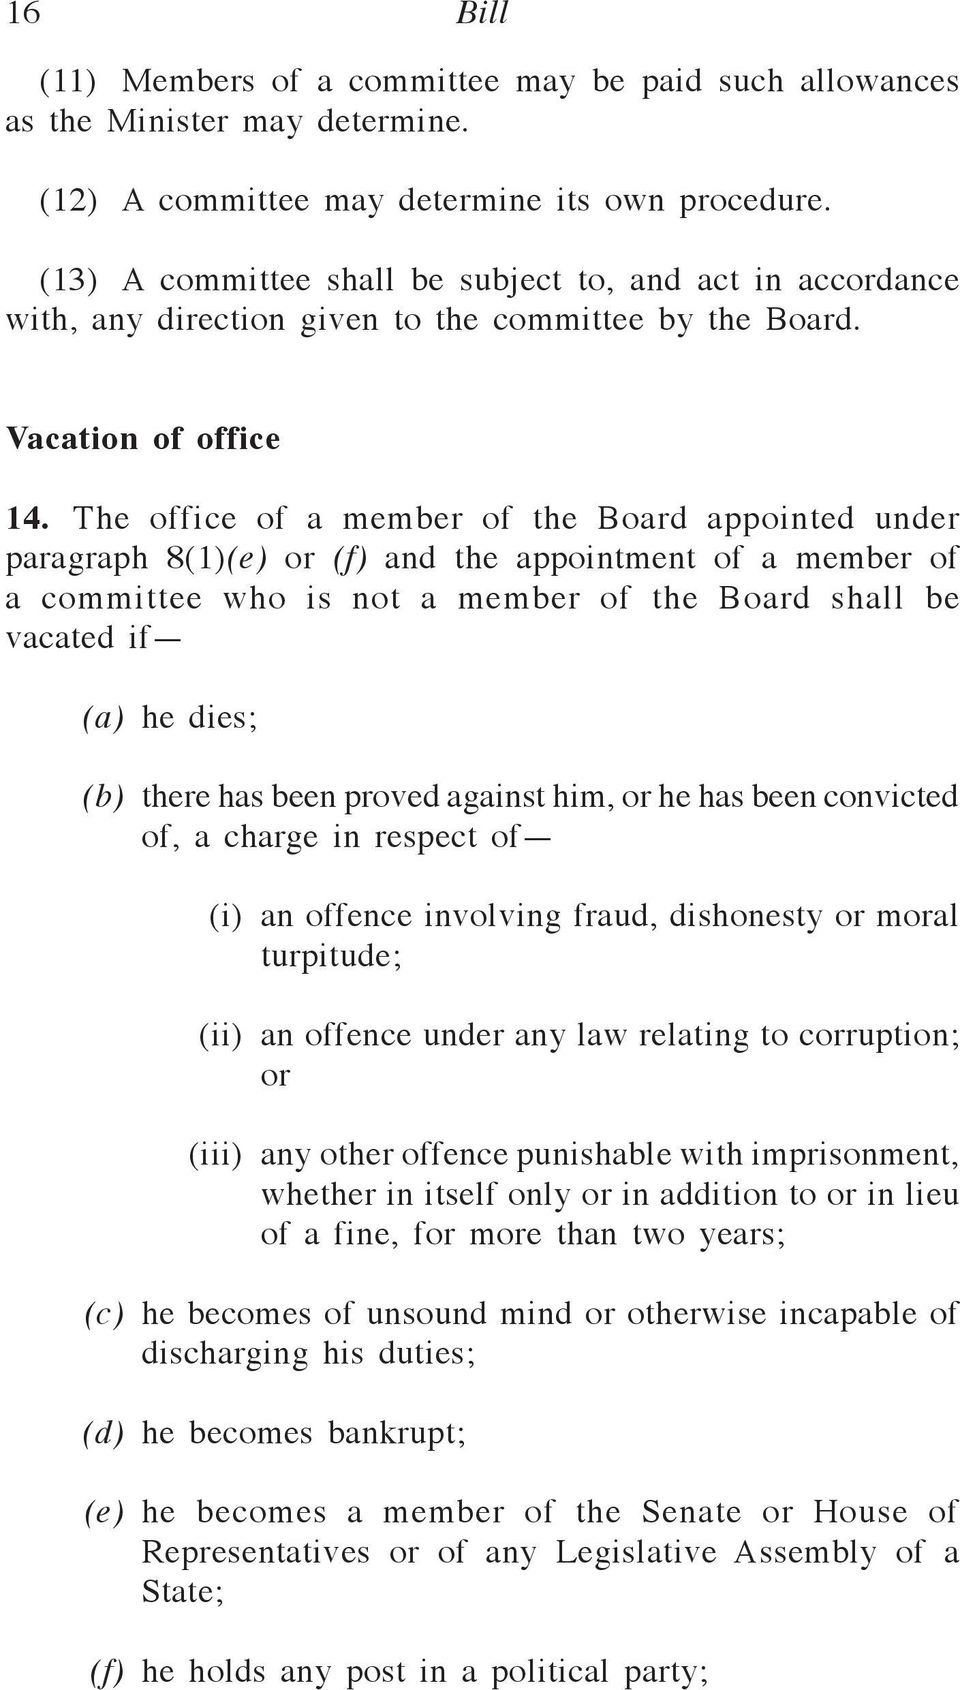 The office of a member of the Board appointed under paragraph 8(1)(e) or (f) and the appointment of a member of a committee who is not a member of the Board shall be vacated if (a) he dies; (b) there